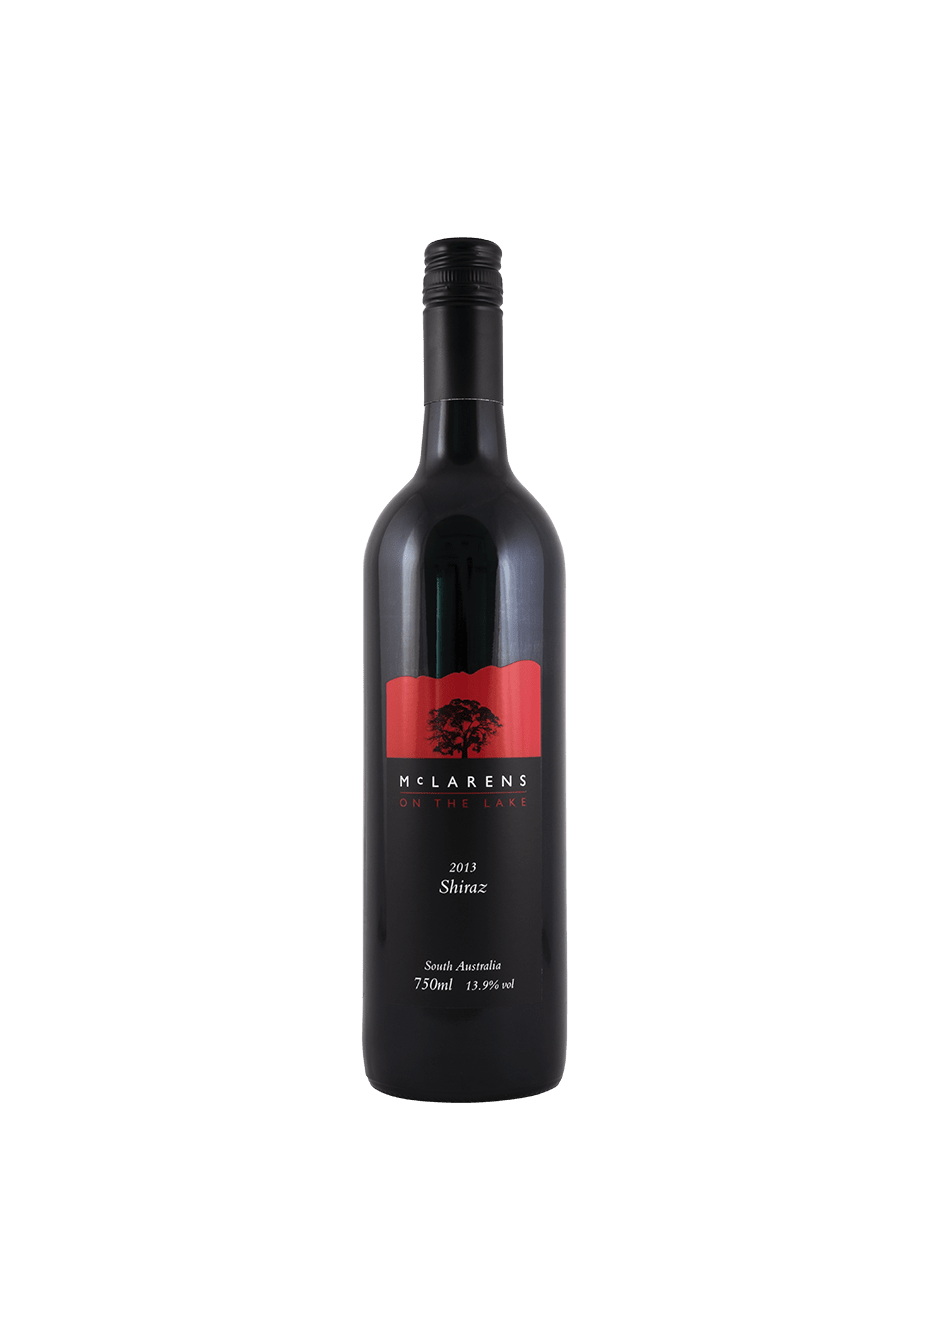 McLaren's 'On The Lake' South Australian Shiraz 2013